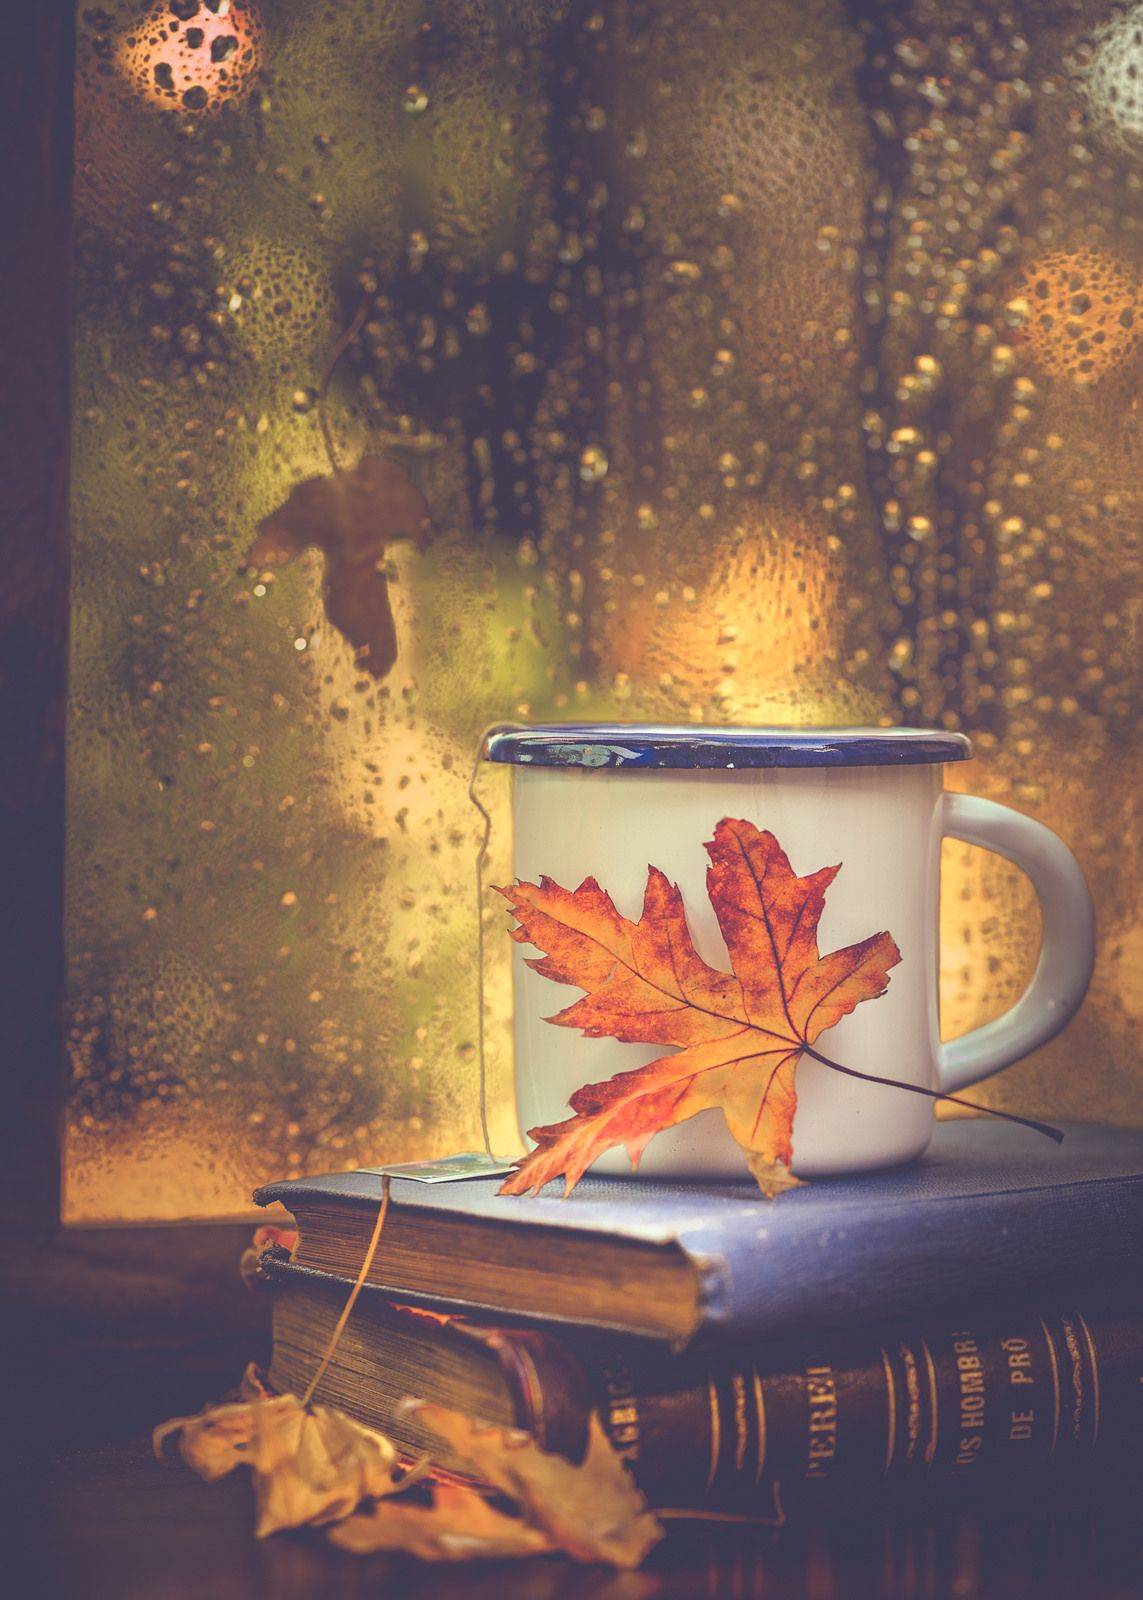 Books, tea and rain drops #autumnseason